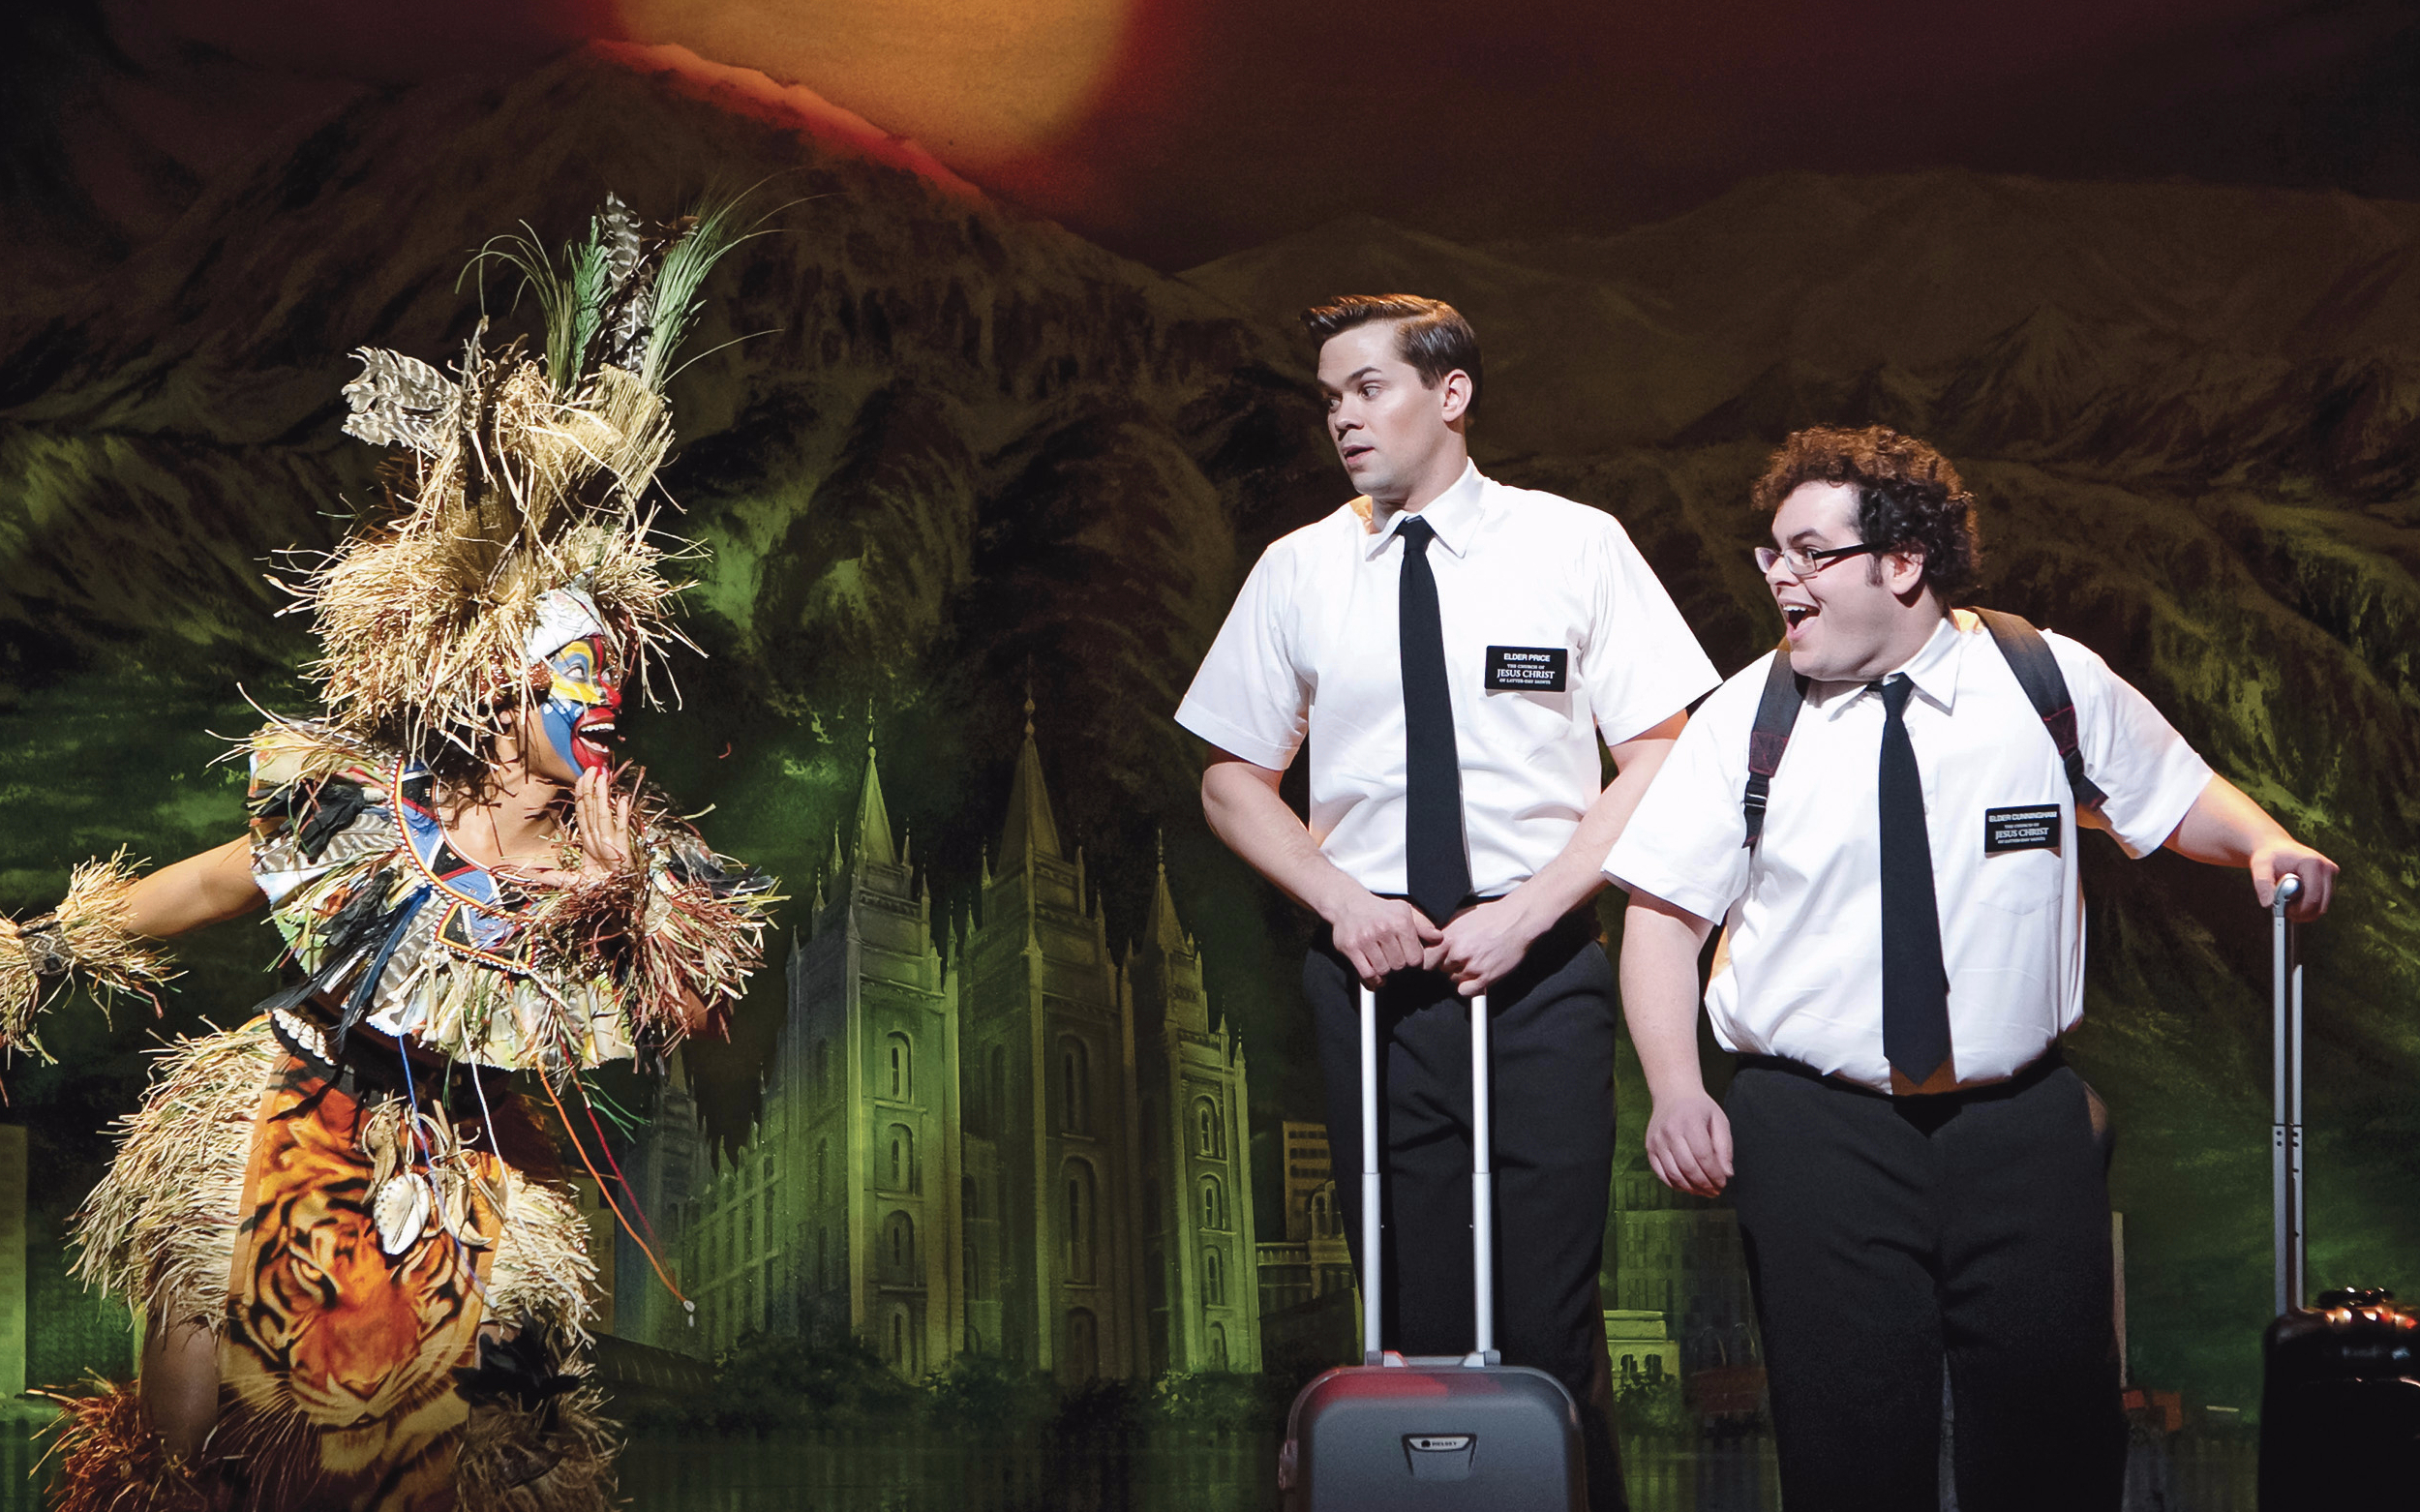 9e1a1f2d a987 4b4b 9986 50d12e944b88 730 new york the book of mormon 03